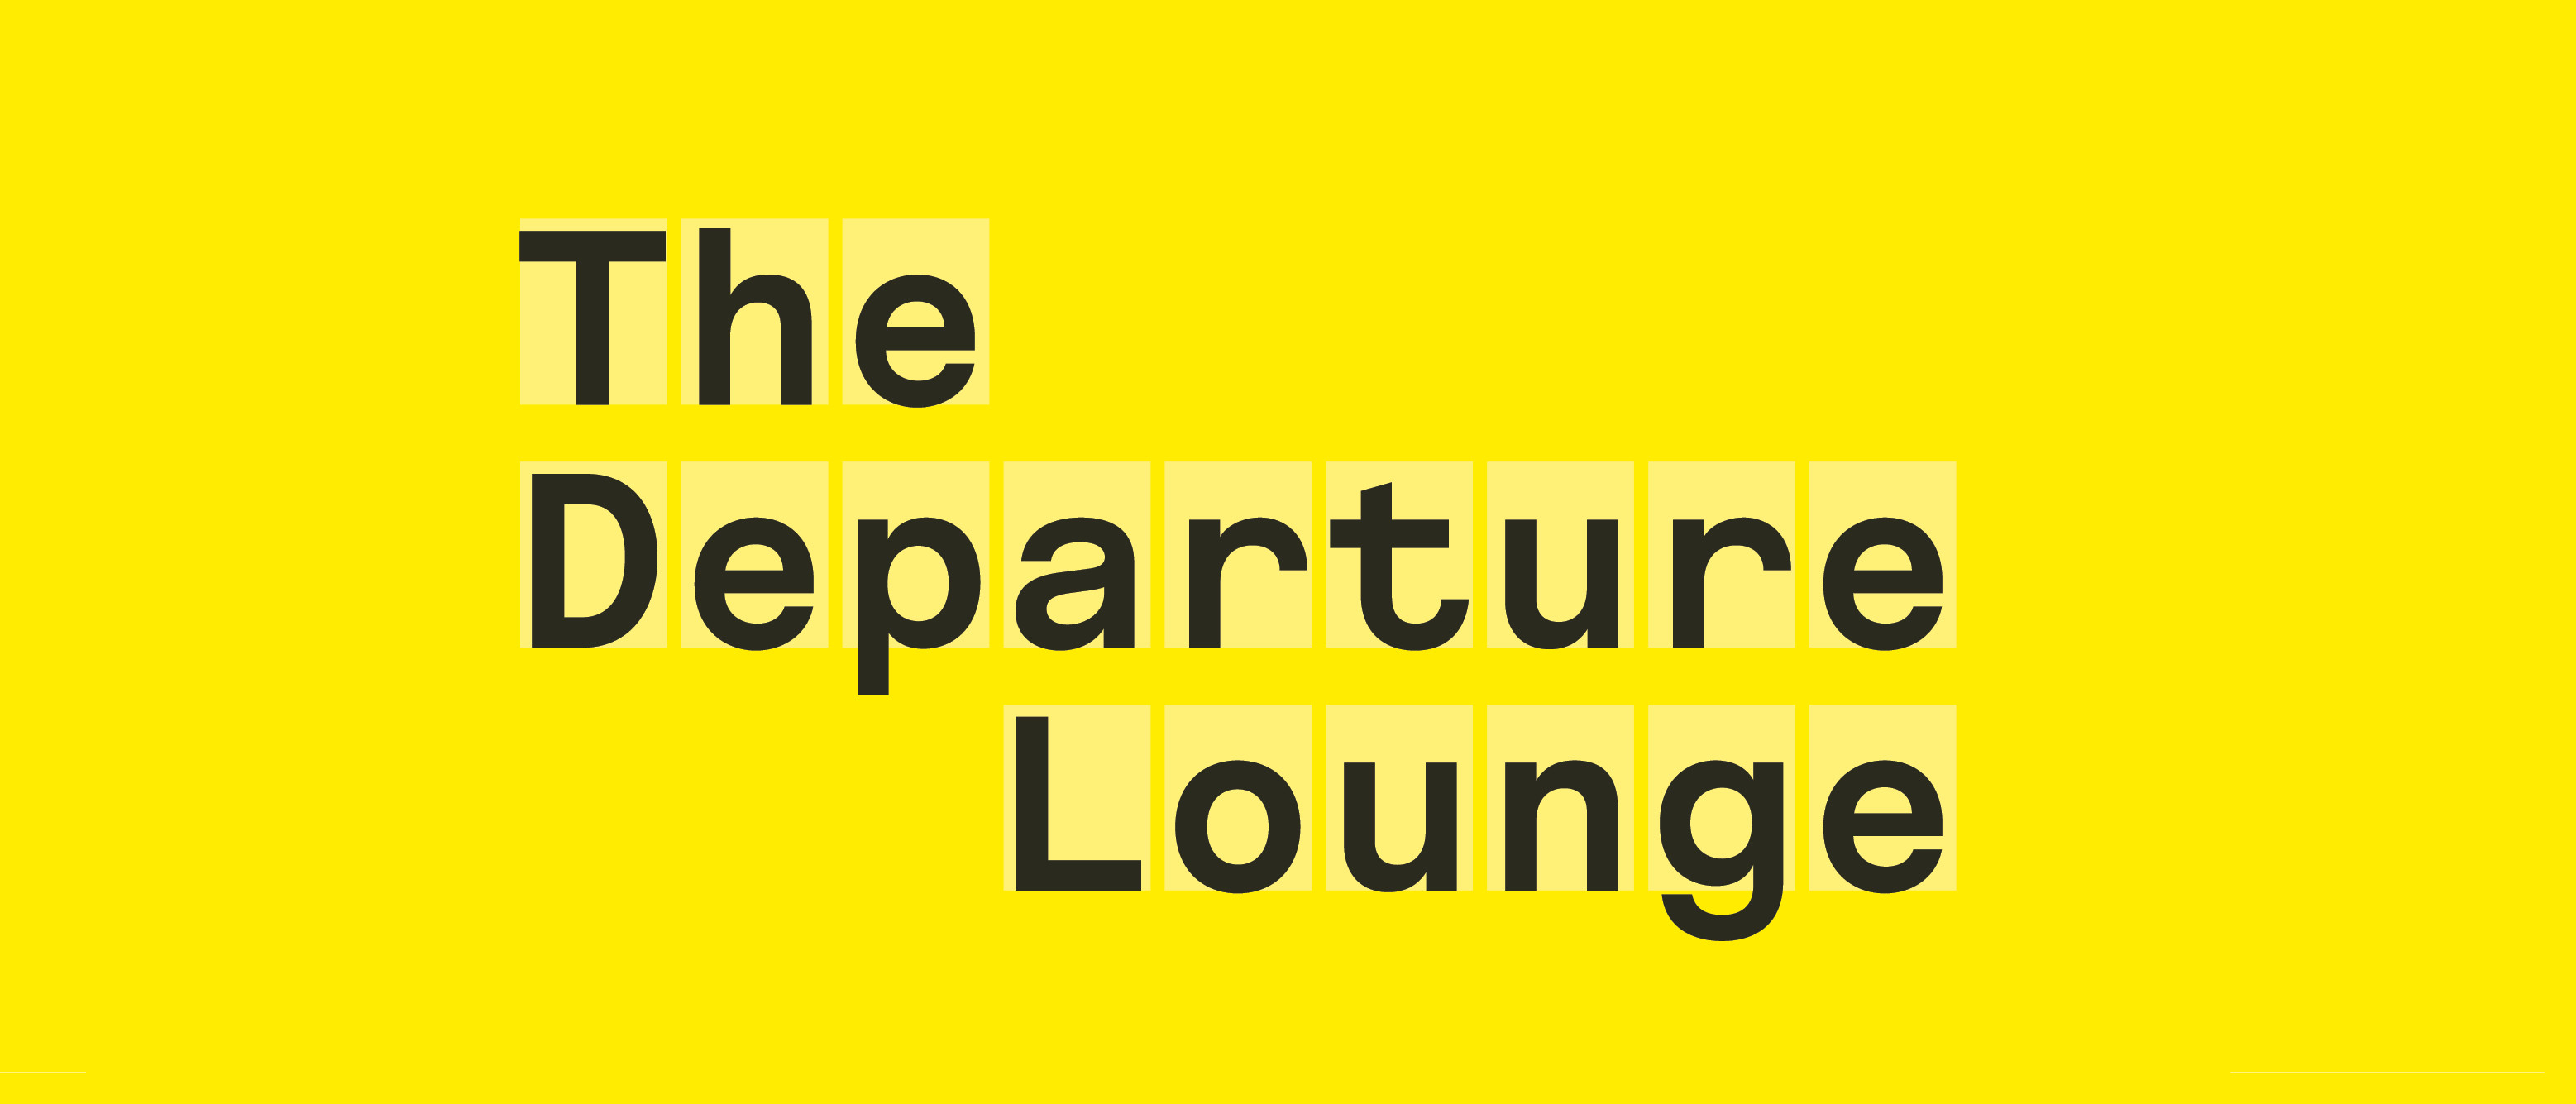 The Departure Lounge The Academy Of Medical Sciences